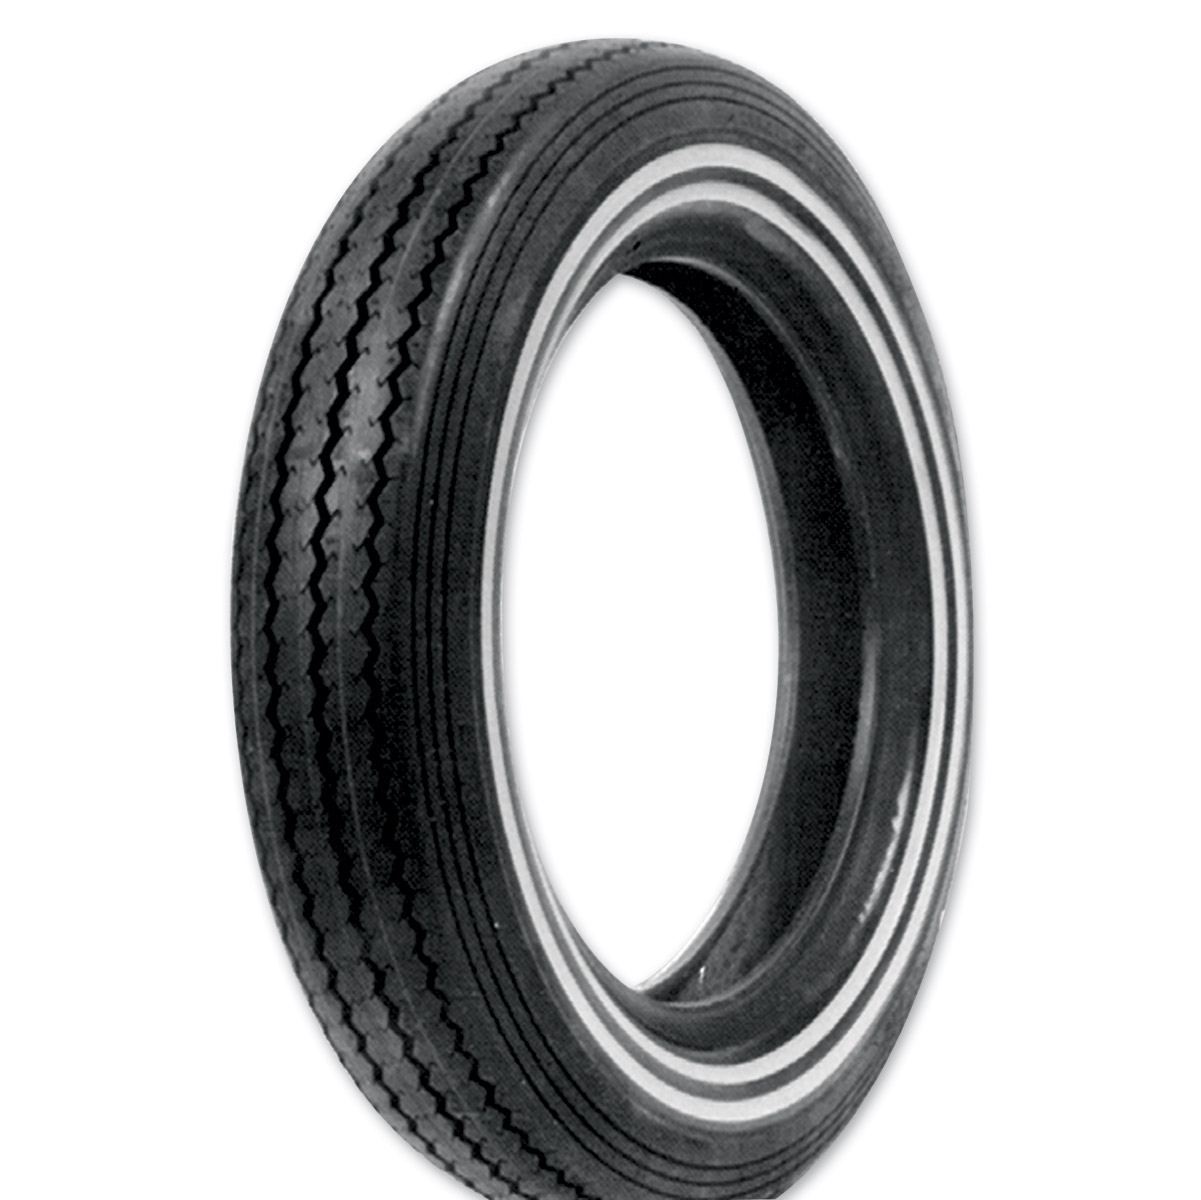 Shinko E240 Classic MT90-16 Dual Whitewall Front/Rear Tire